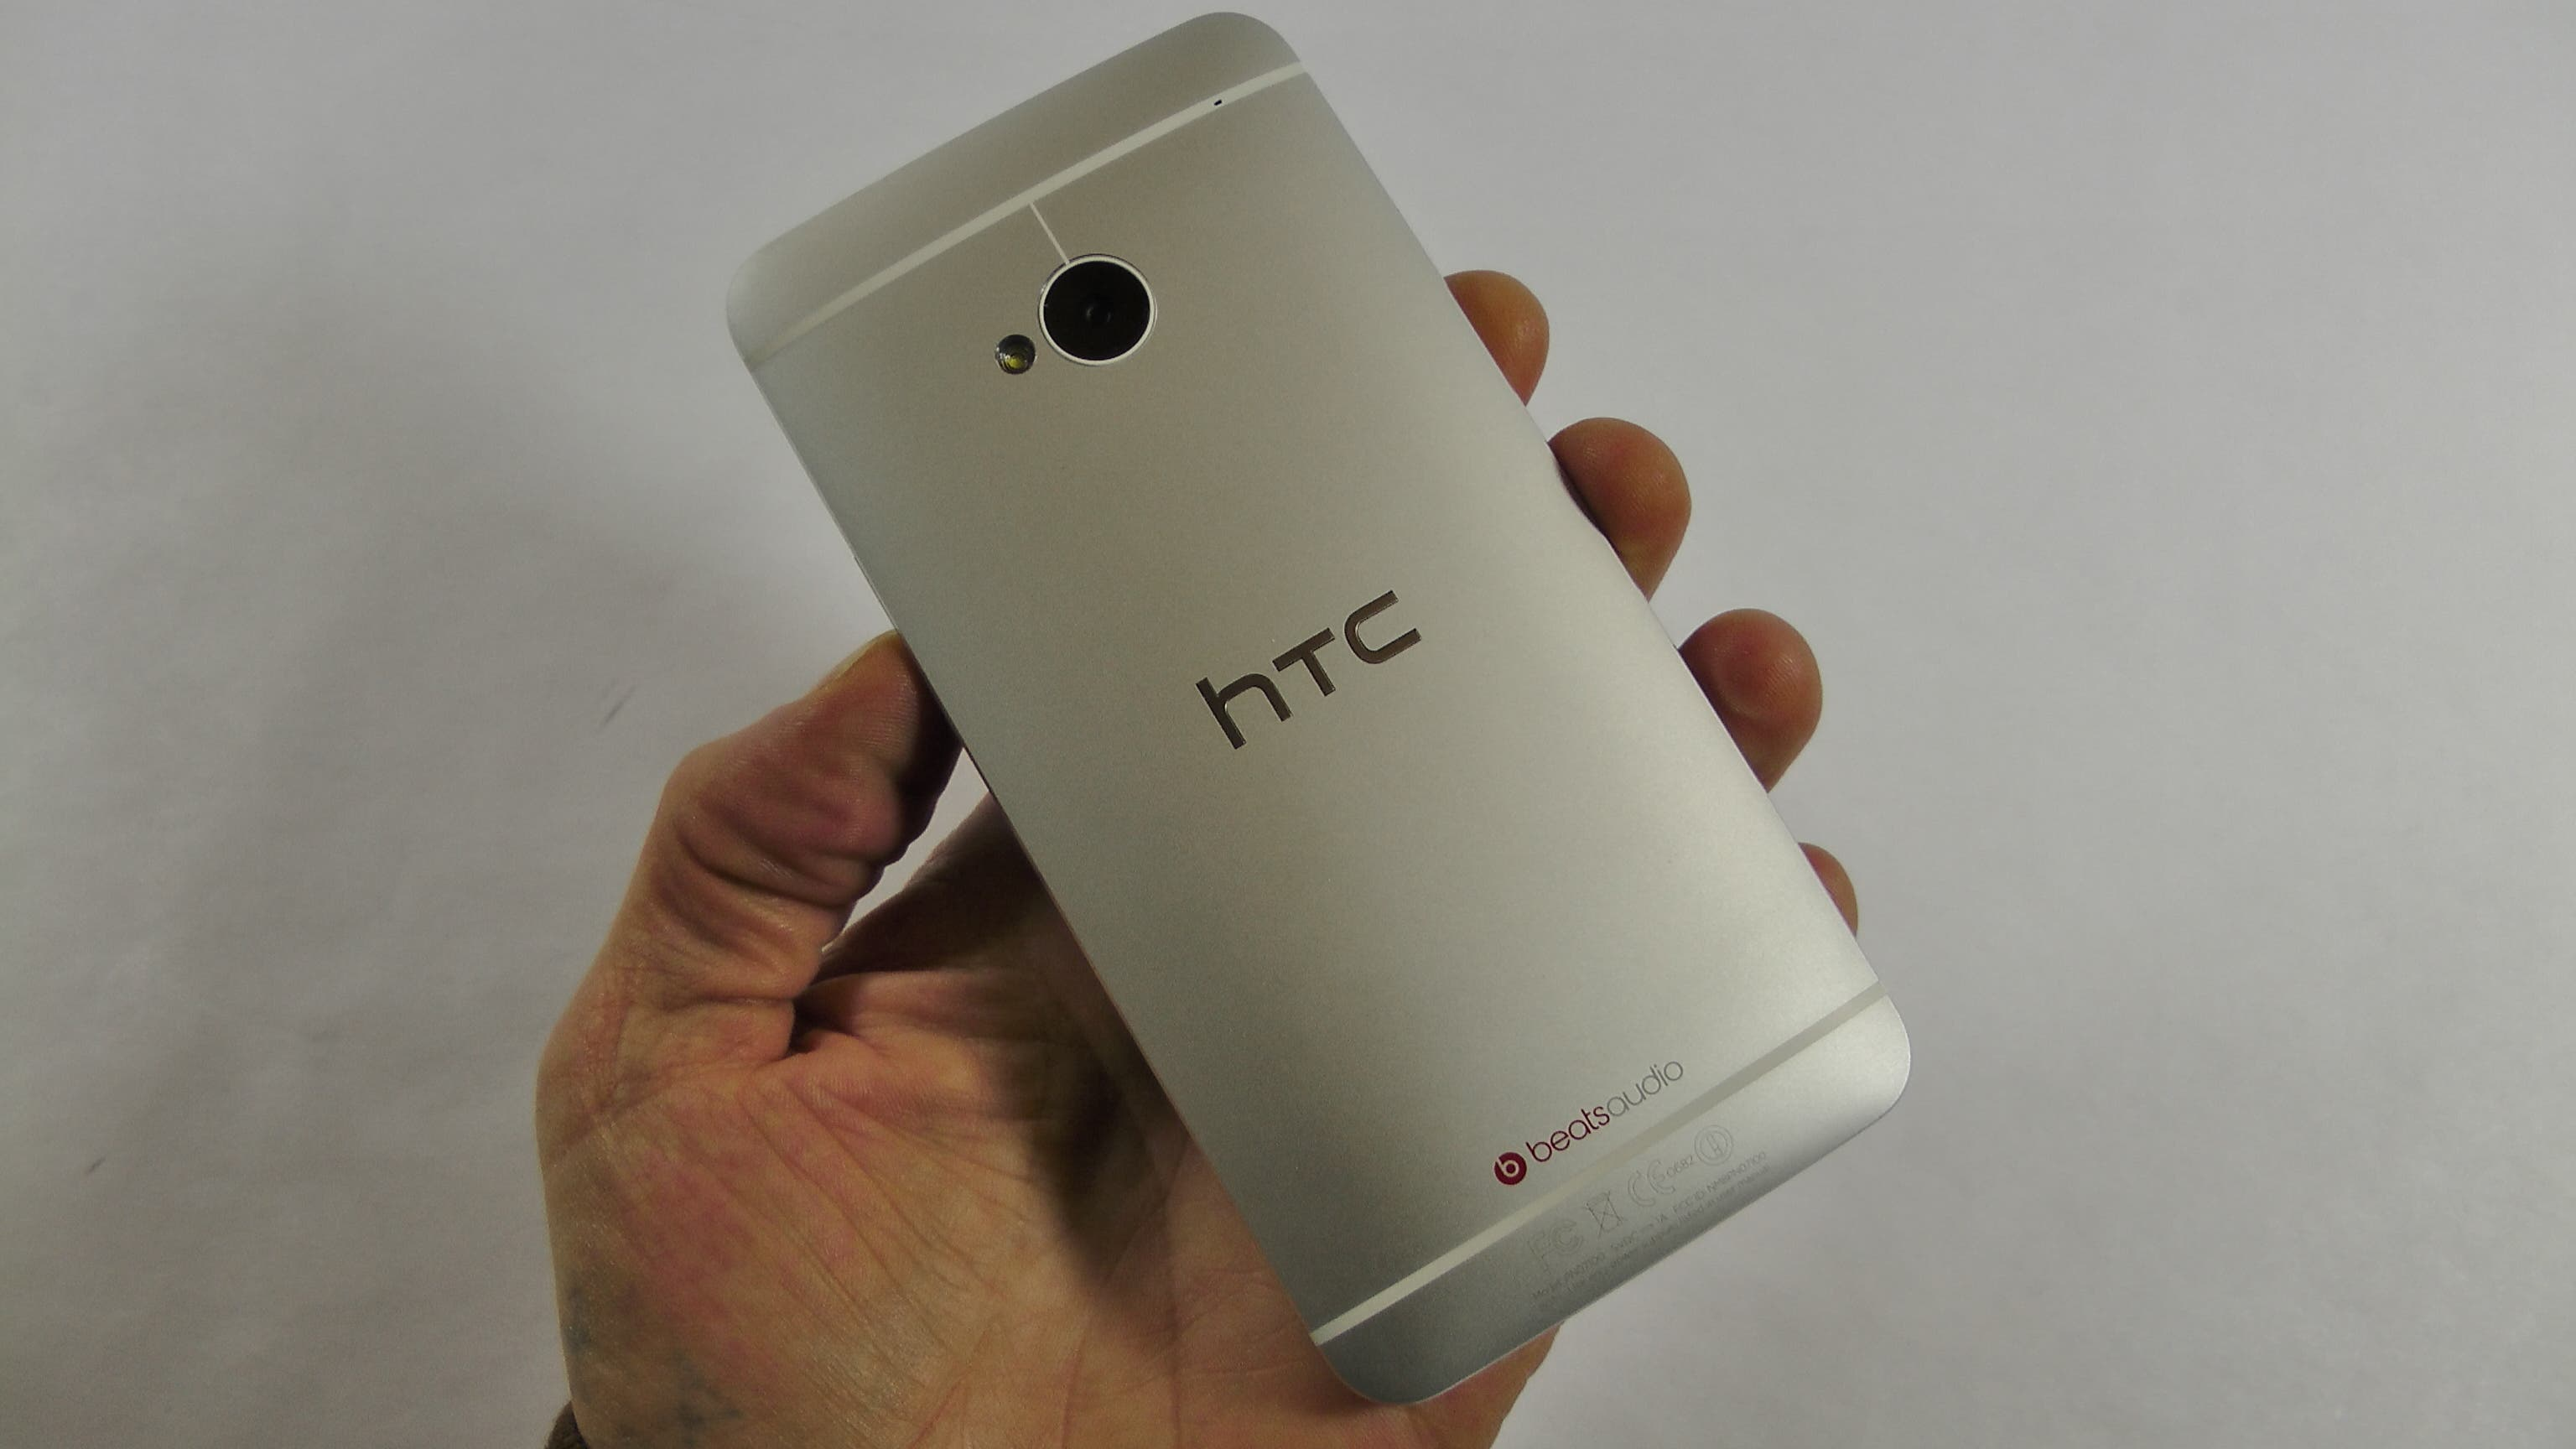 HTC One Test Hardware 8 News: GPS Bug bei Nexus 7 behoben, Galaxy Note 3 mit Snapdragon 800, Apple kauft Embark